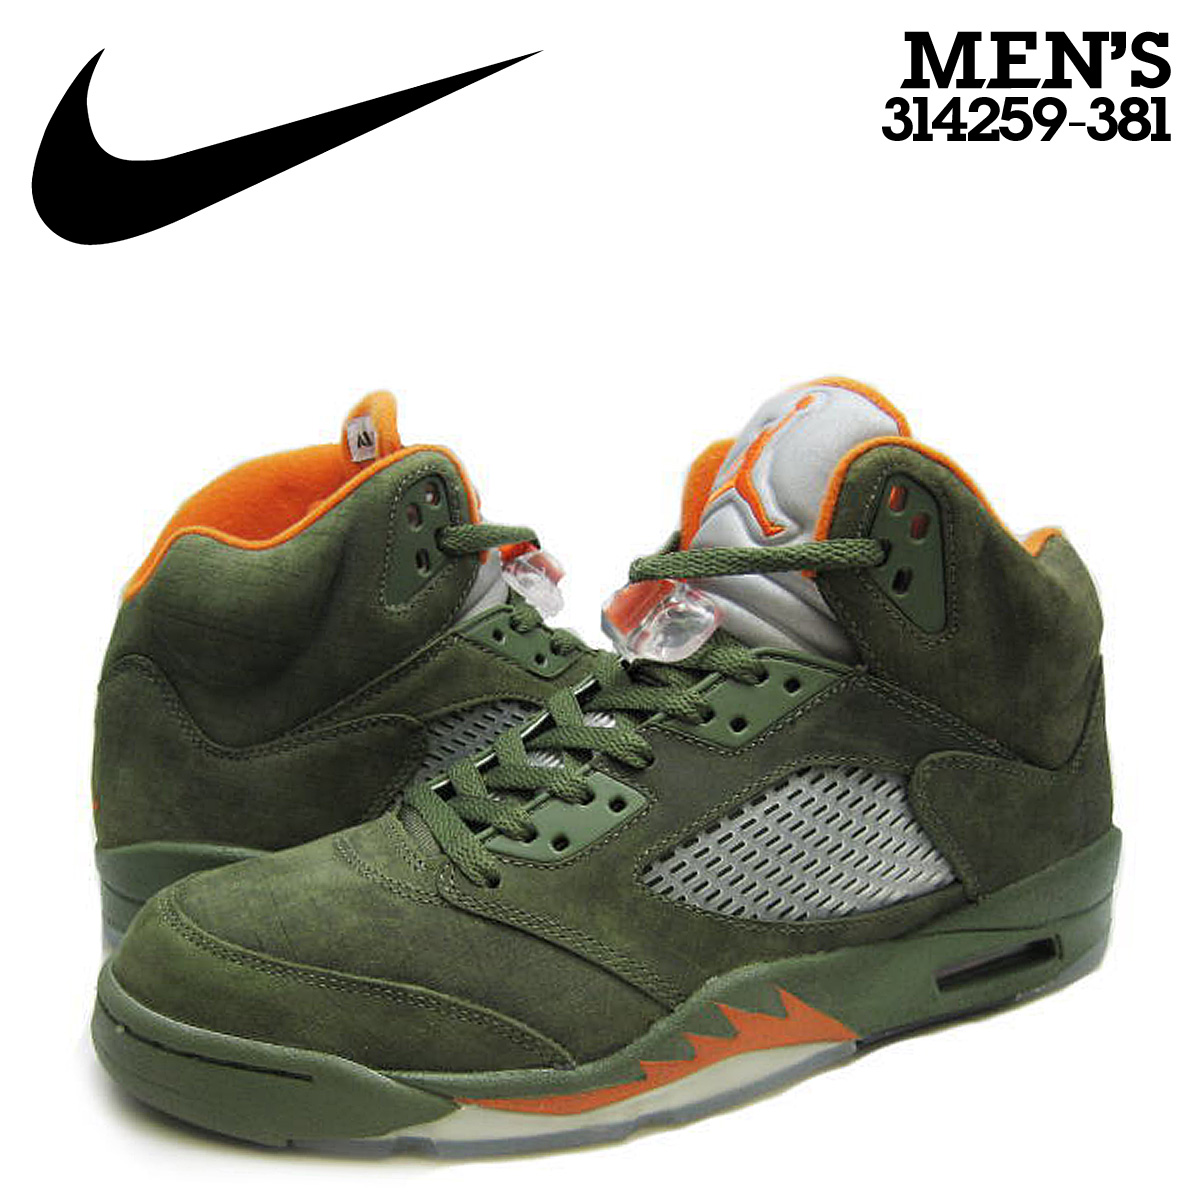 buy popular 852db d4379 NIKE Nike Air Jordan sneakers AIR JORDAN 5 RETRO LS ARMY OLIVE Air Jordan  nostalgic lifestyle 314,259-381 green men [◆]